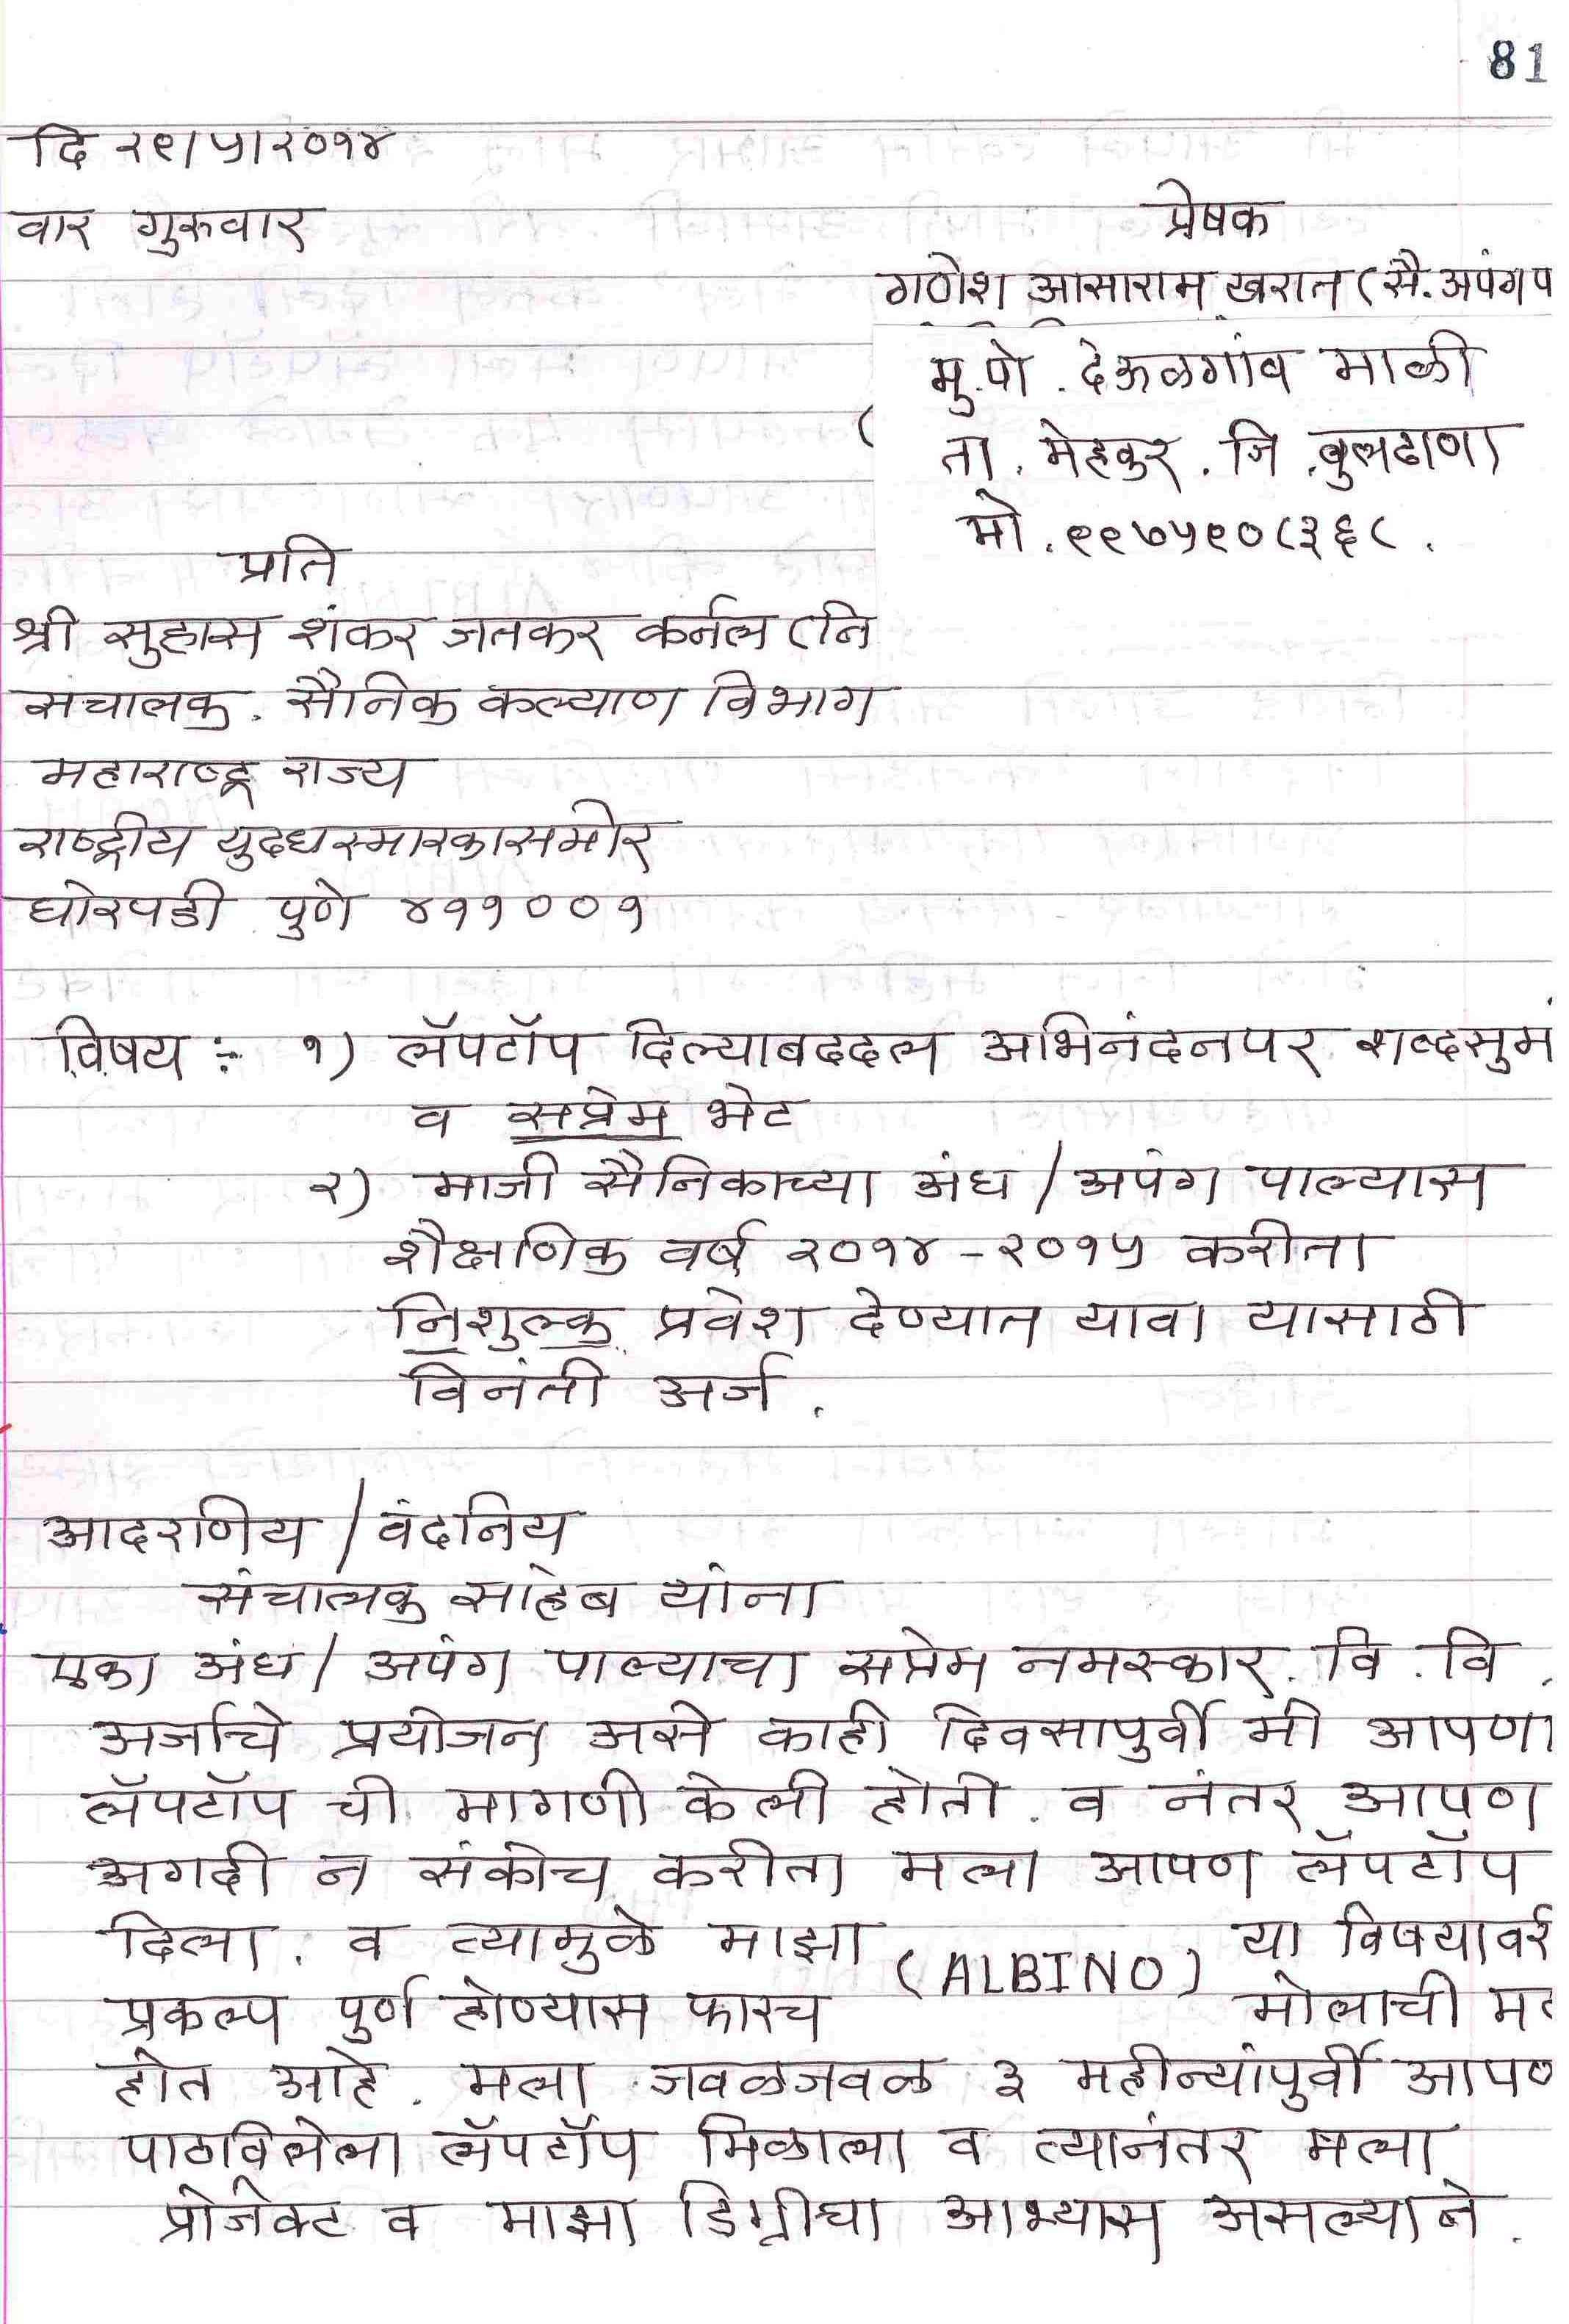 formal letter writing marathi language template gallery